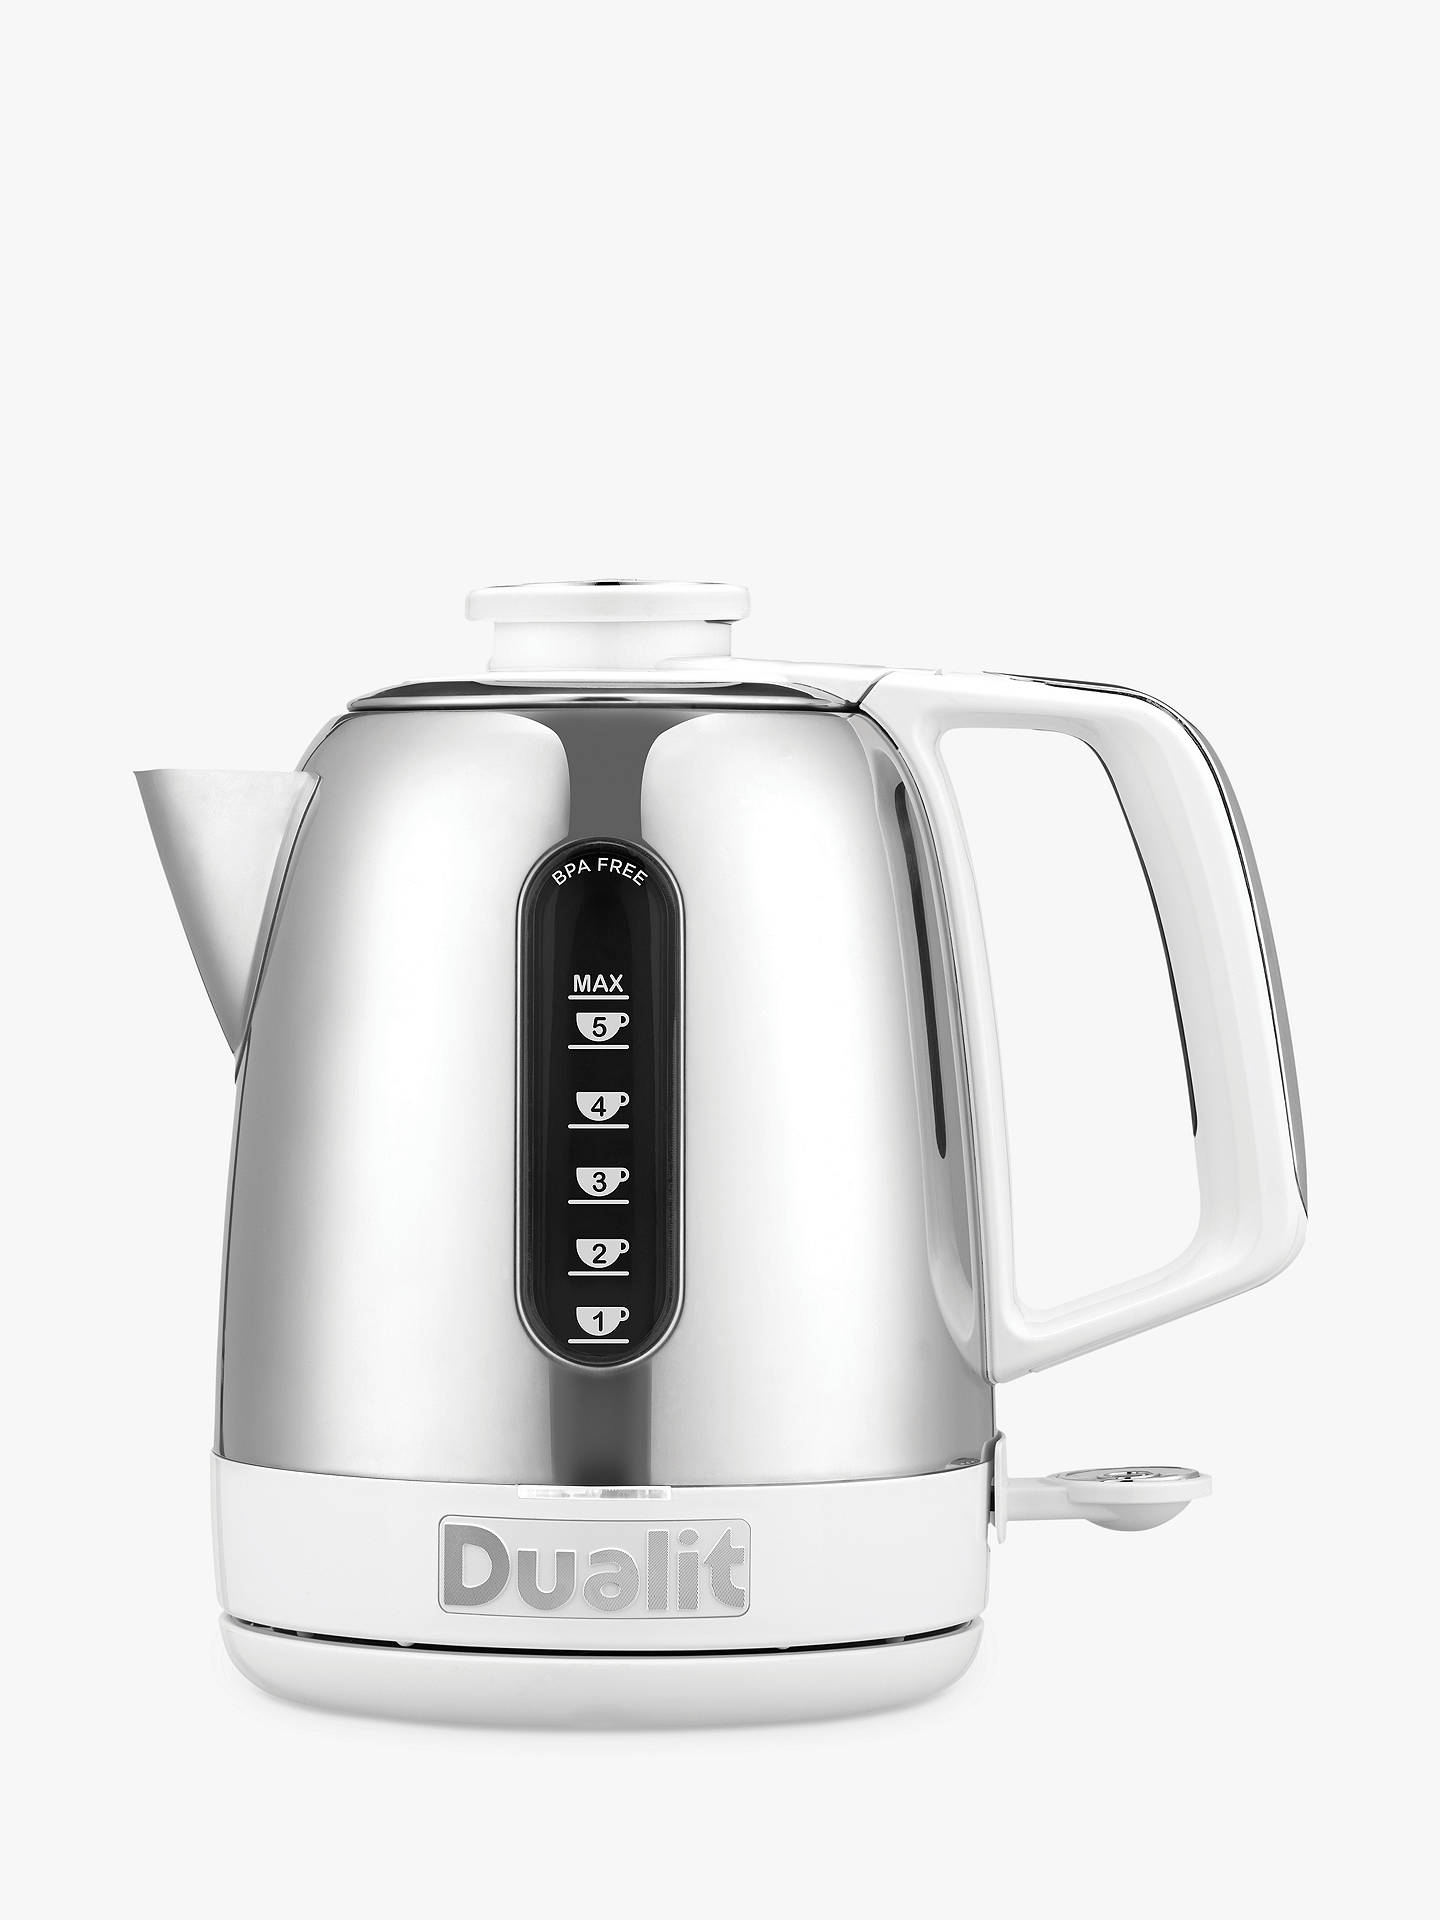 Dualit Kettle Filter Home Decorating Ideas Interior Design